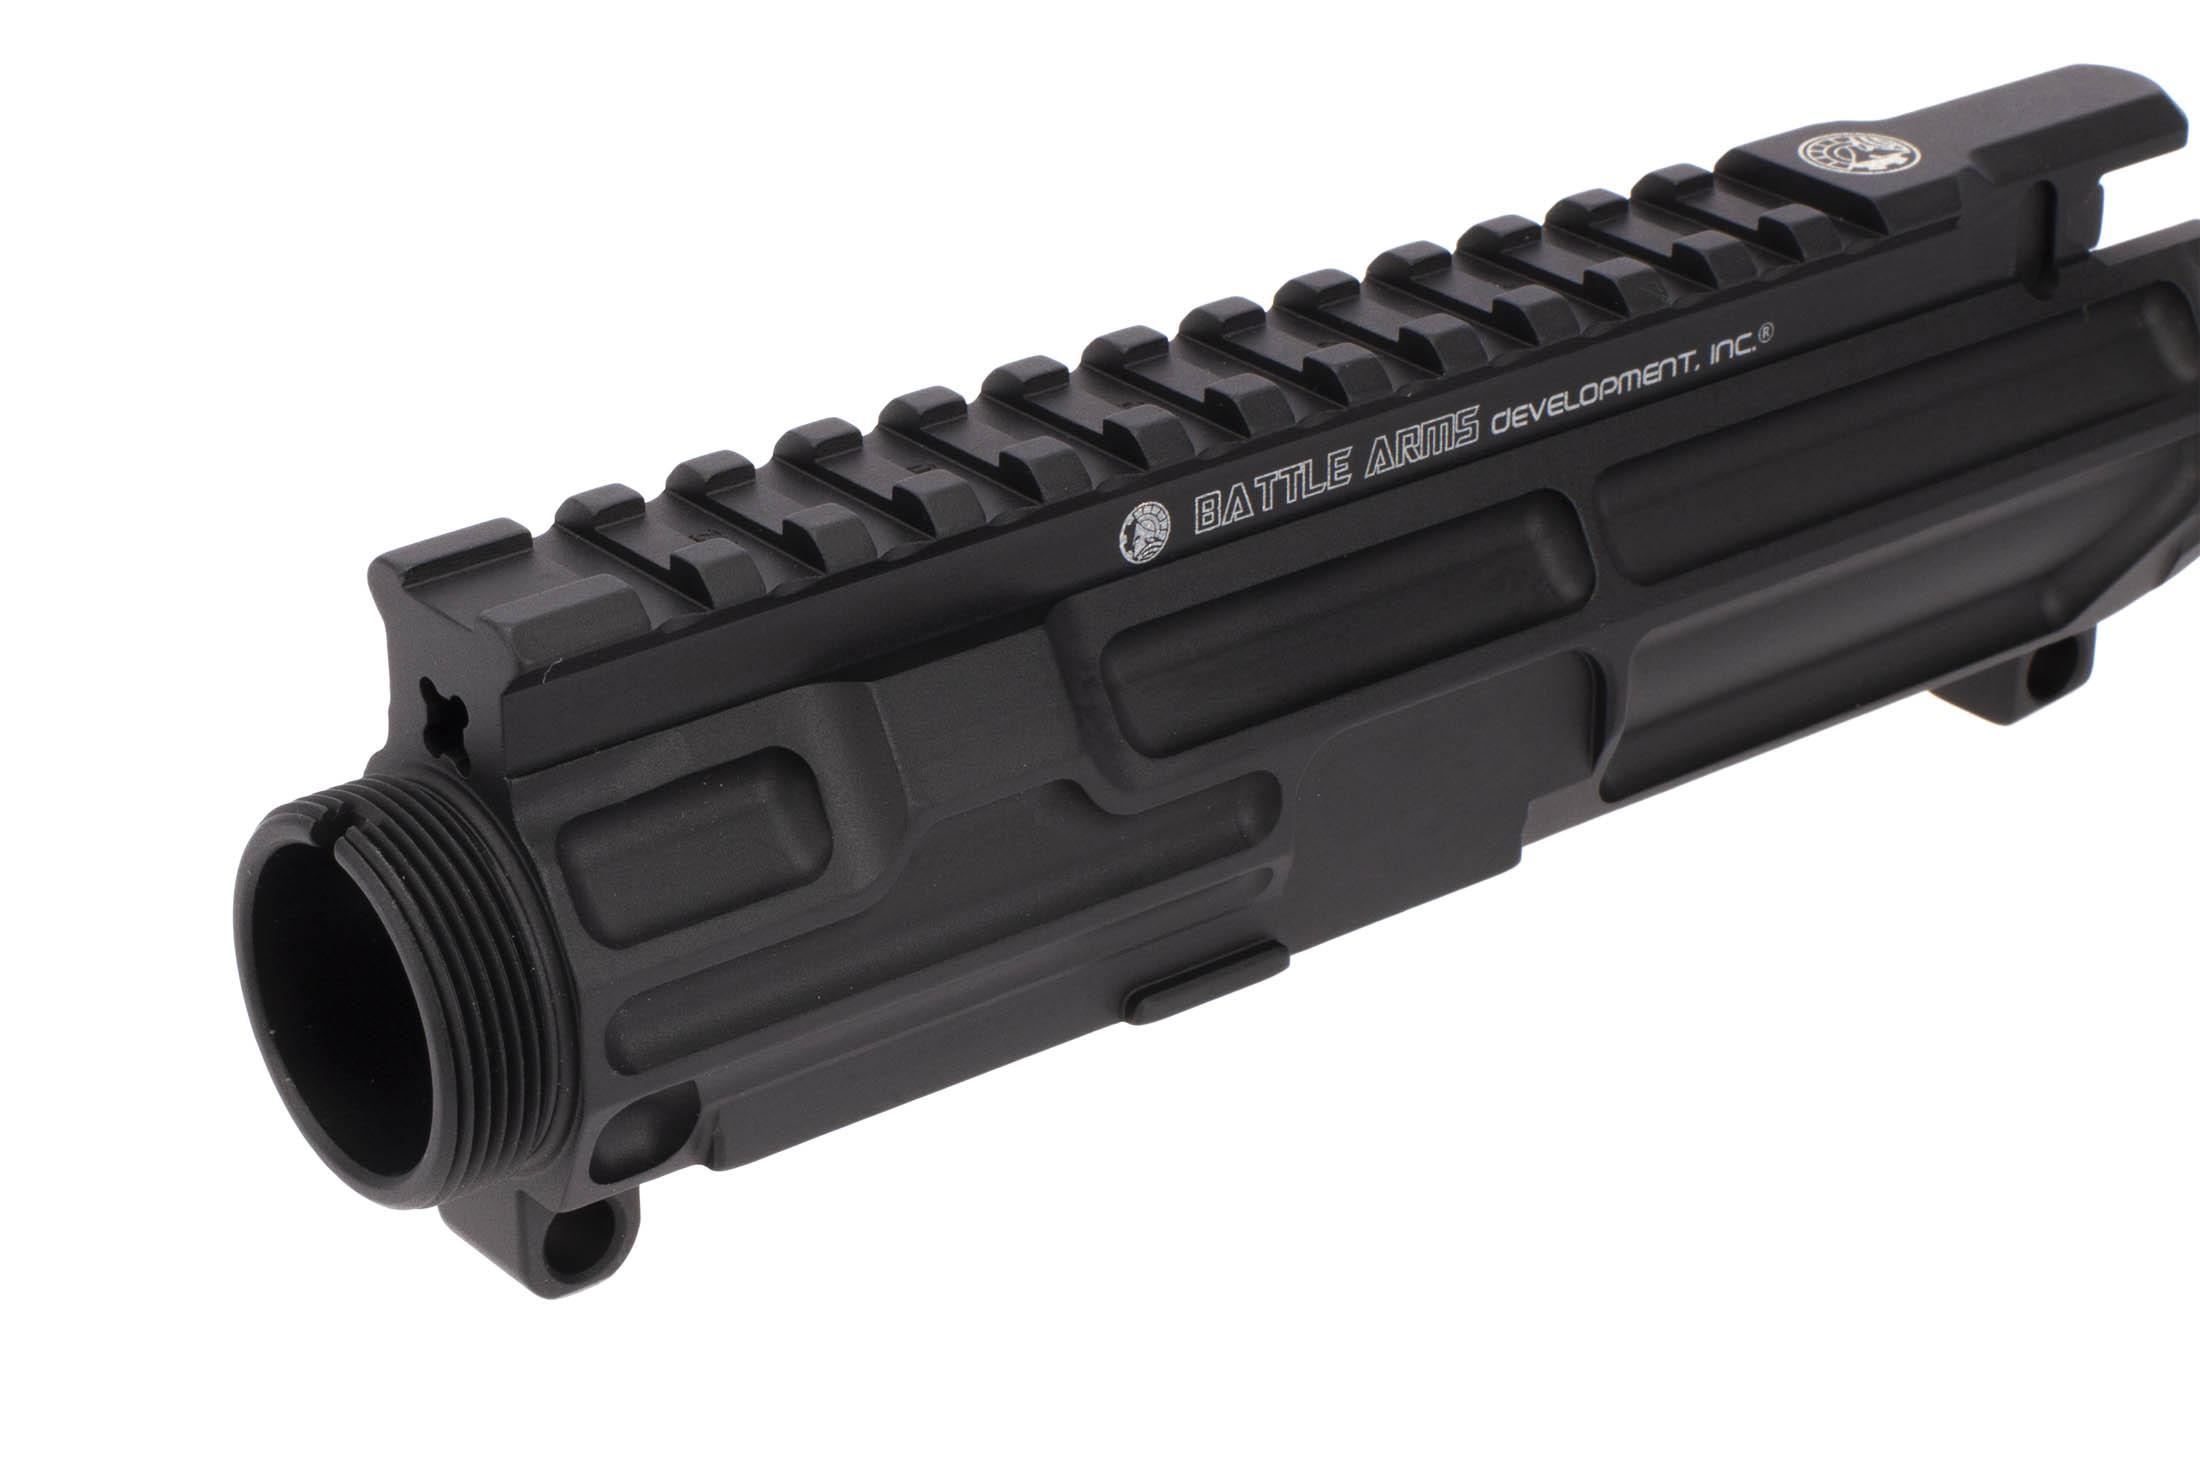 The Battle Arms Development AR15 upper has machined t-marks for adding and removing optics